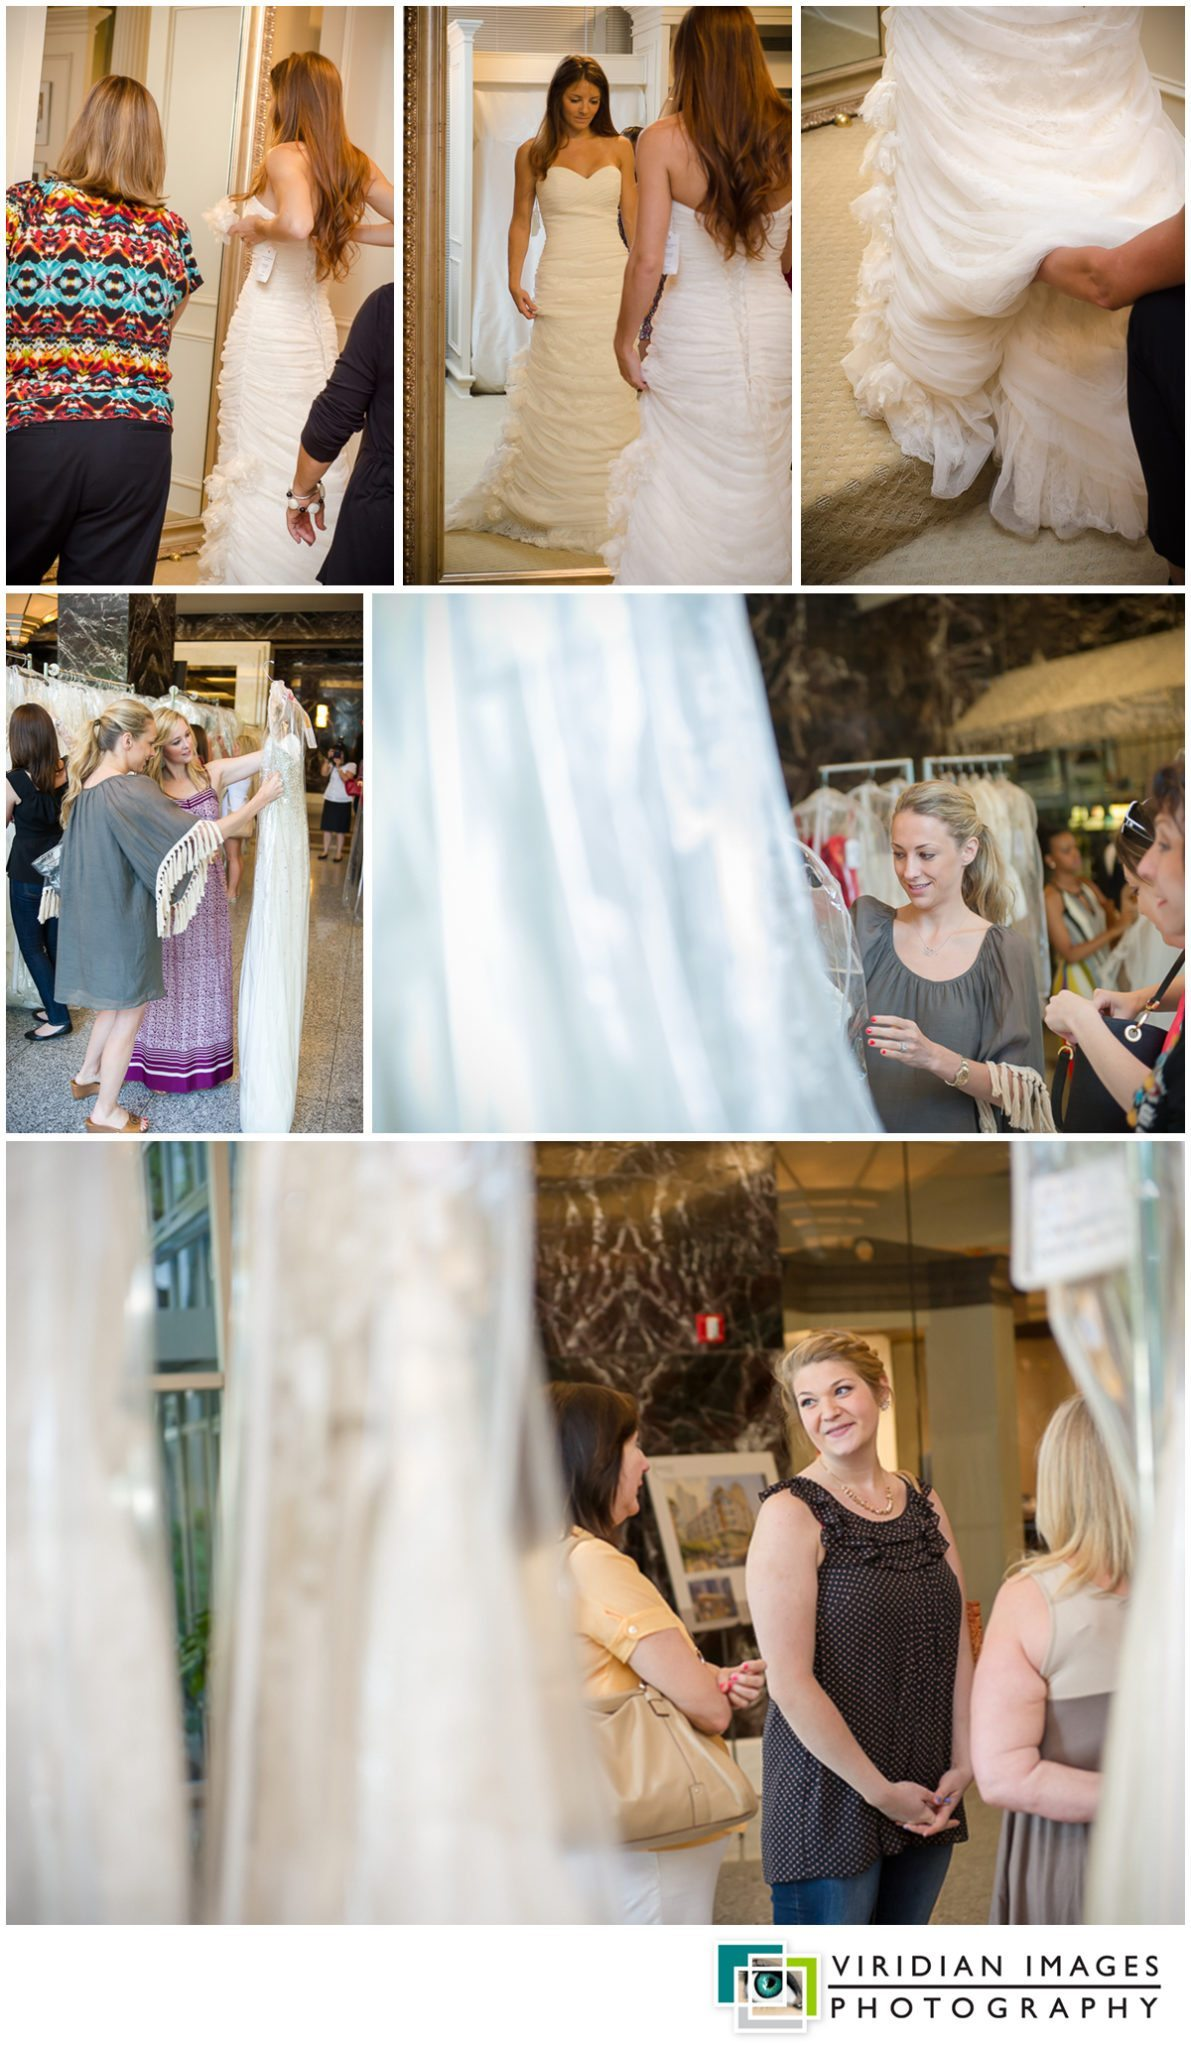 Viridian_Images_Photography_Guffys_Buckhead_Bridals_Anne_Barge_6_photo